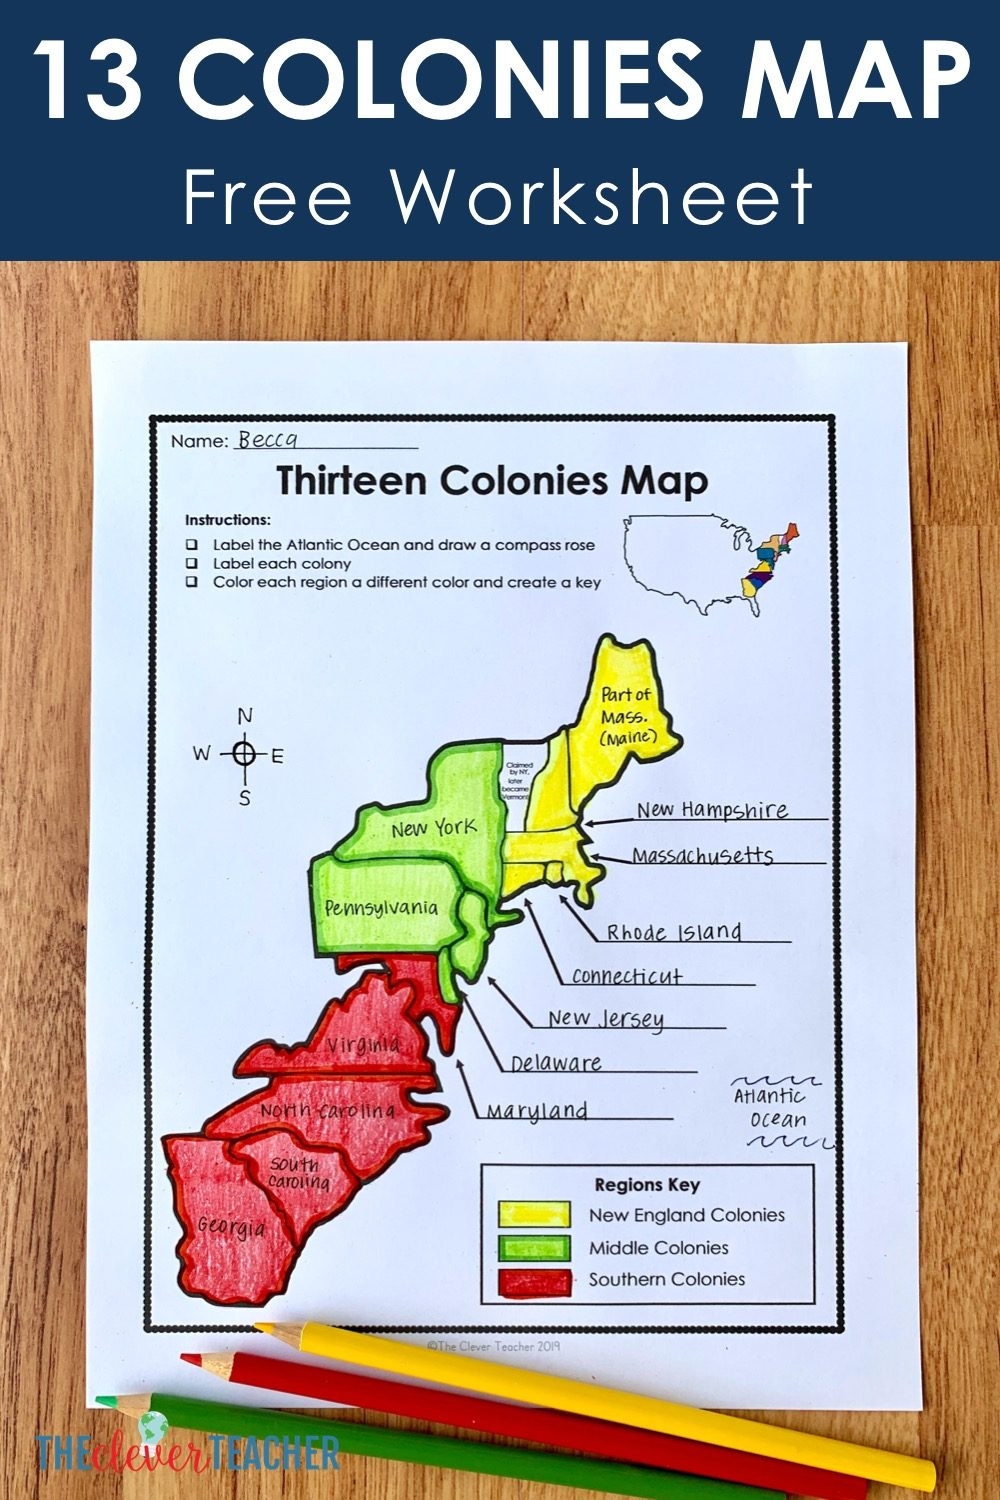 Compass Rose Worksheets Middle School 13 Colonies Free Map Worksheet and Lesson for Students